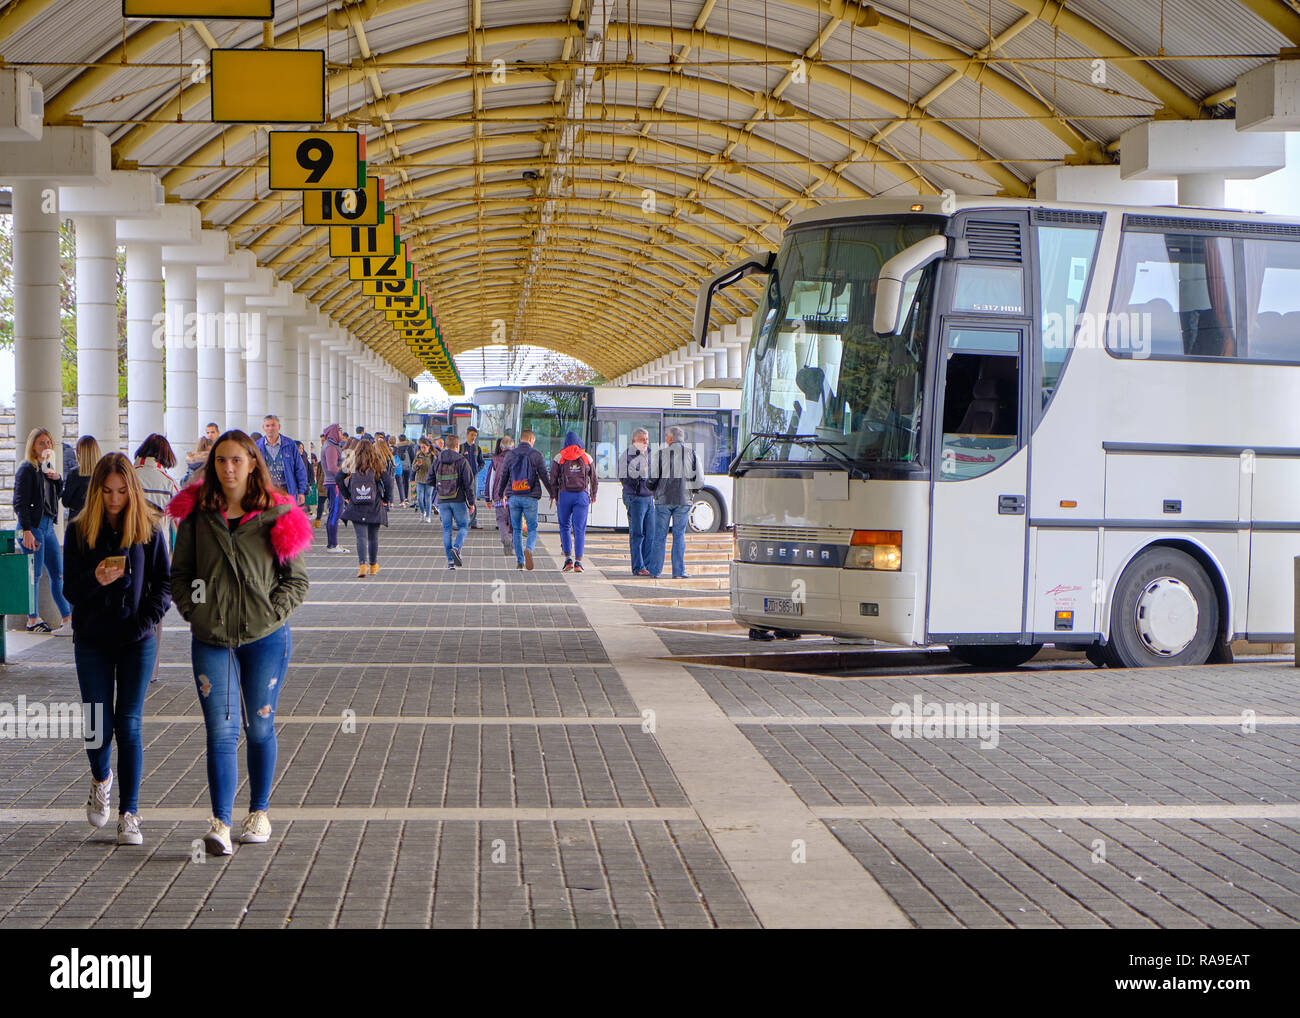 The long distance bus terminal platform 9 and up, with bus waiting, and passengers arriving, Leading line of the numbers and arched dome architecture - Stock Image